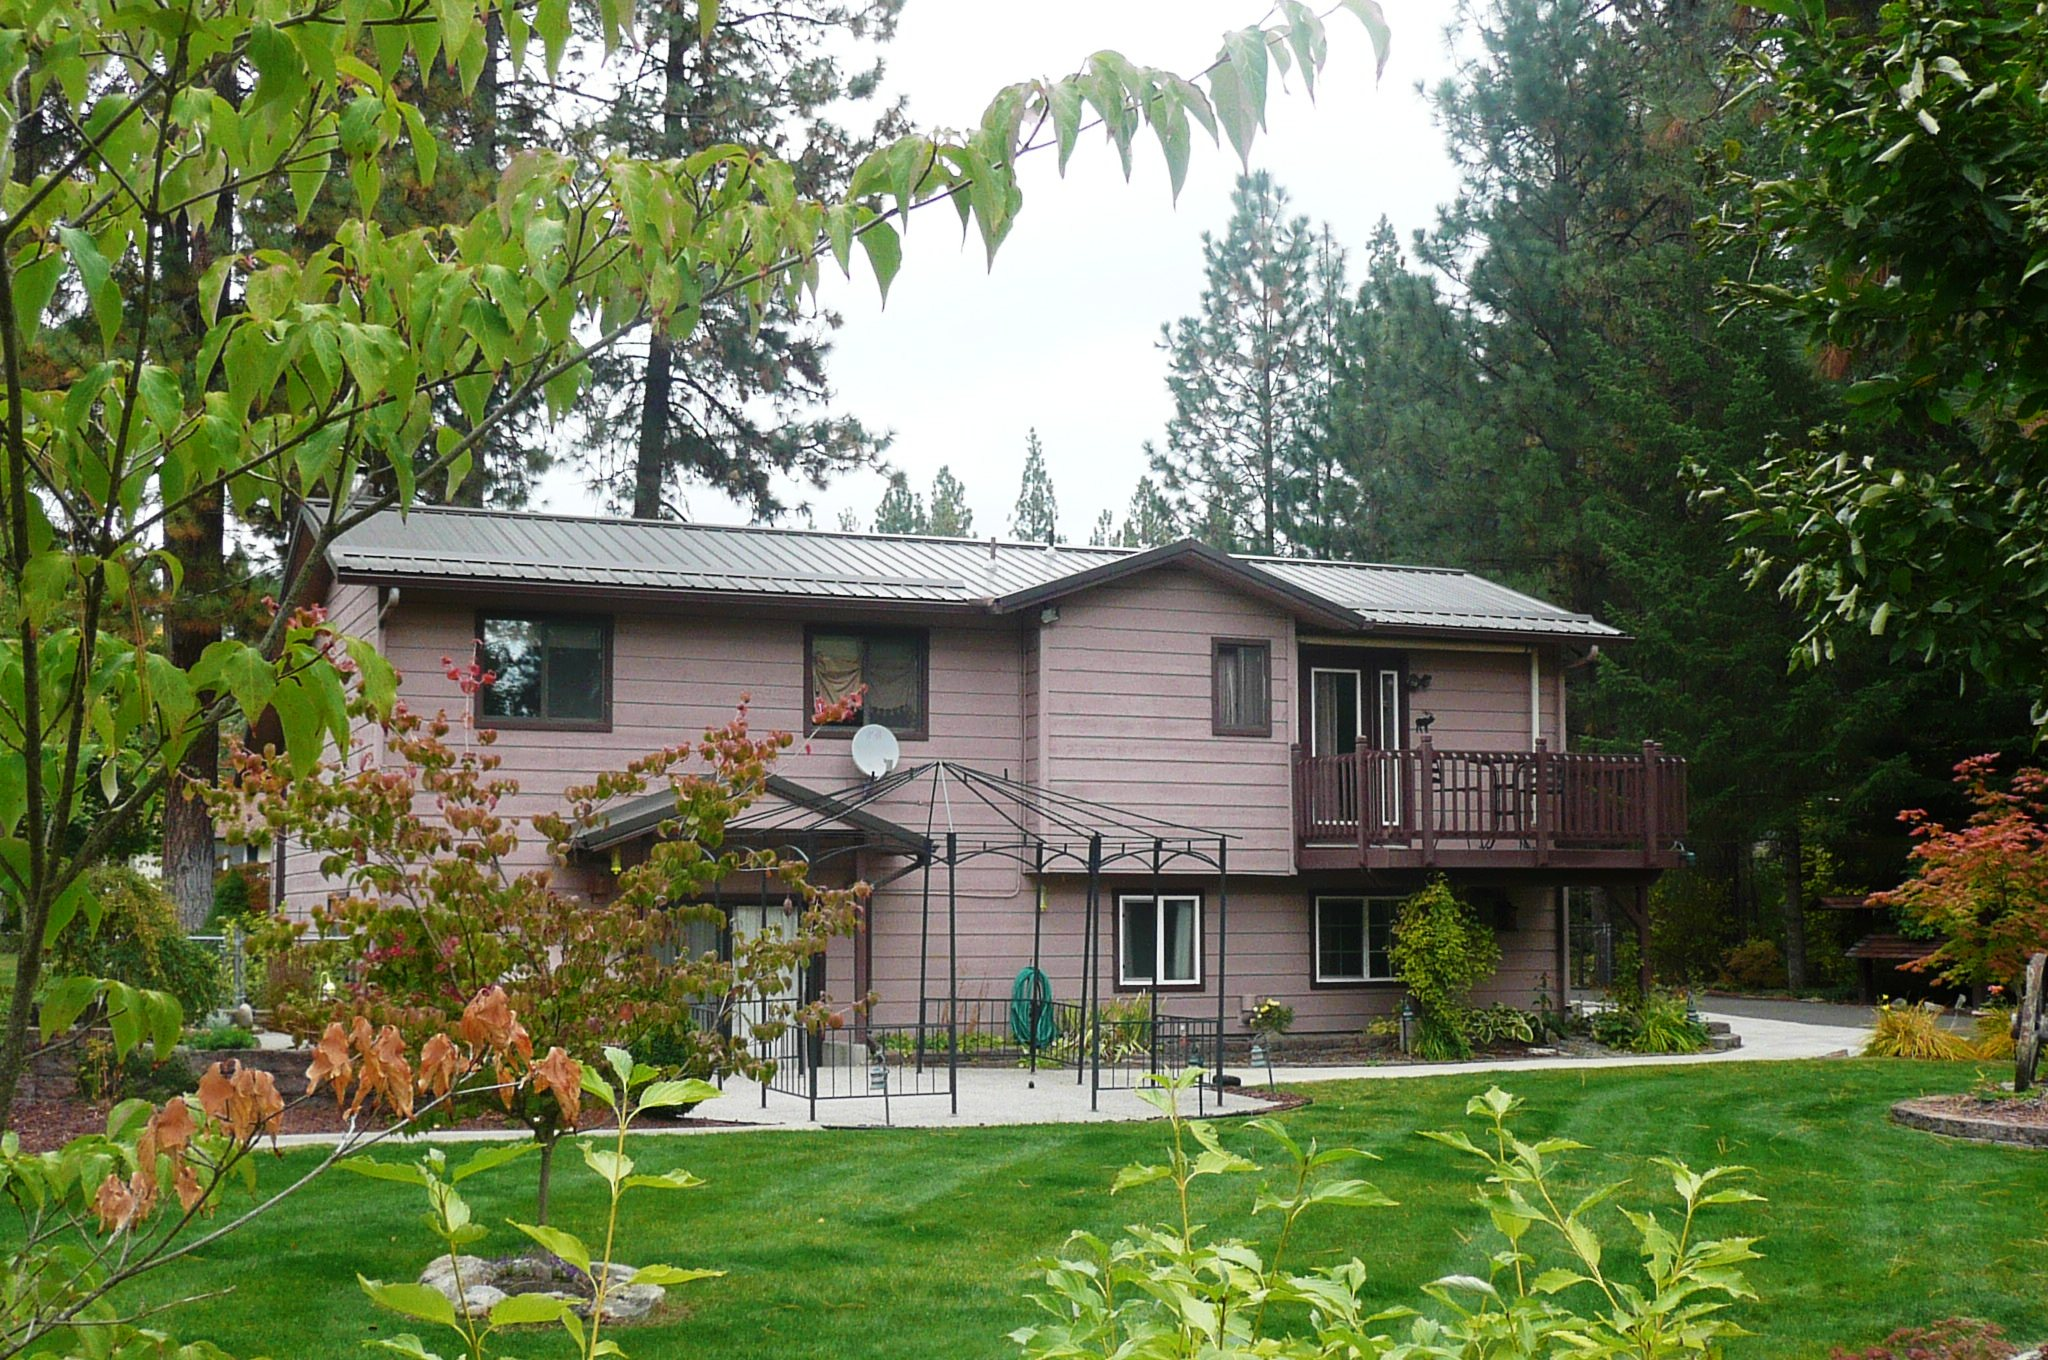 Landscaped 1 Acre Home on Appaloosa